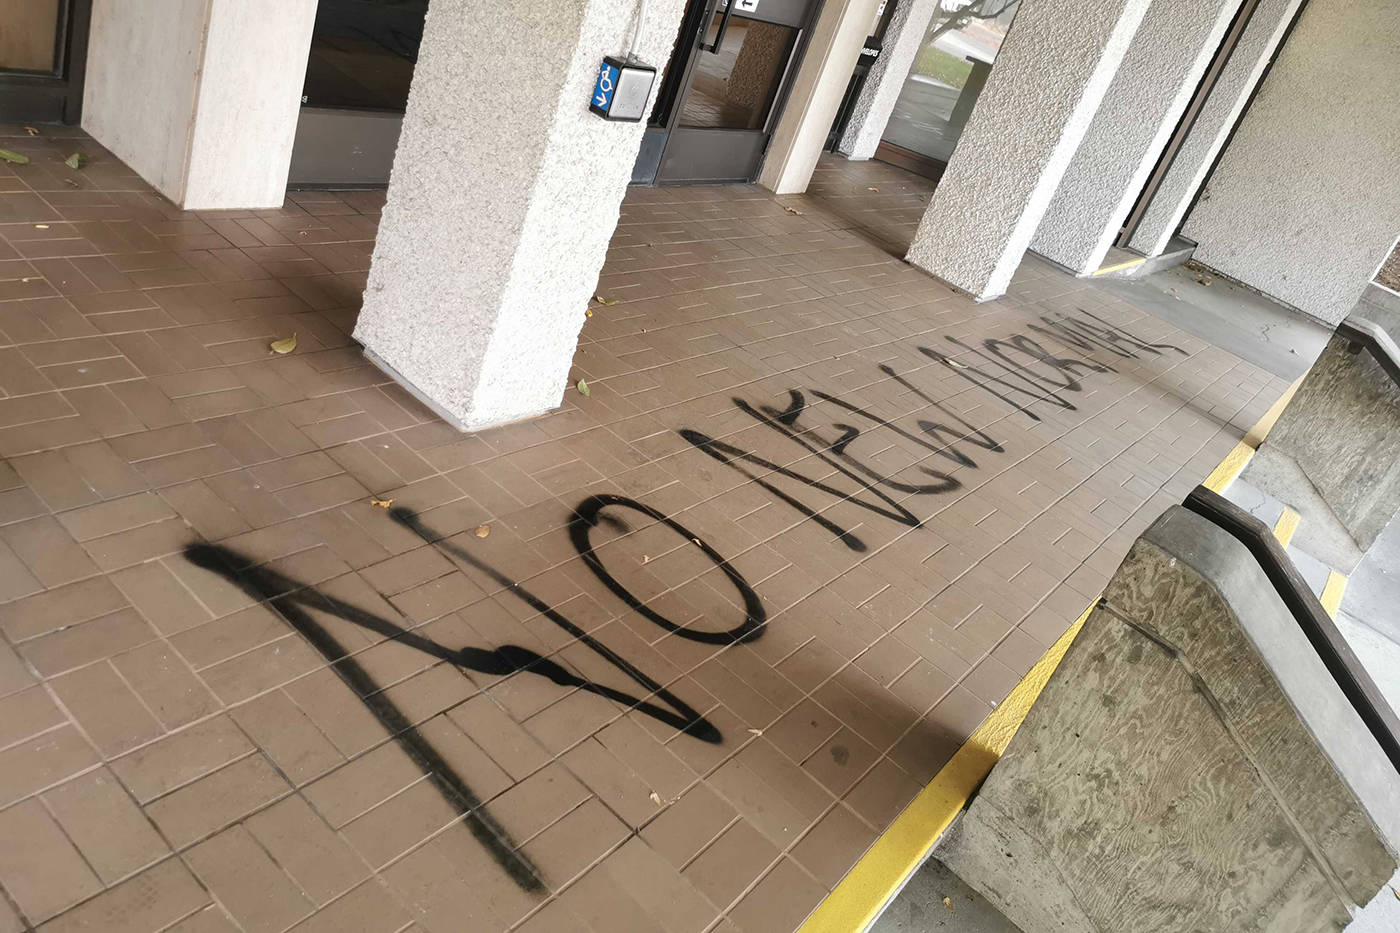 Kelowna City Hall has been vandalized overnight. (Michael Rodriguez - Capital News)